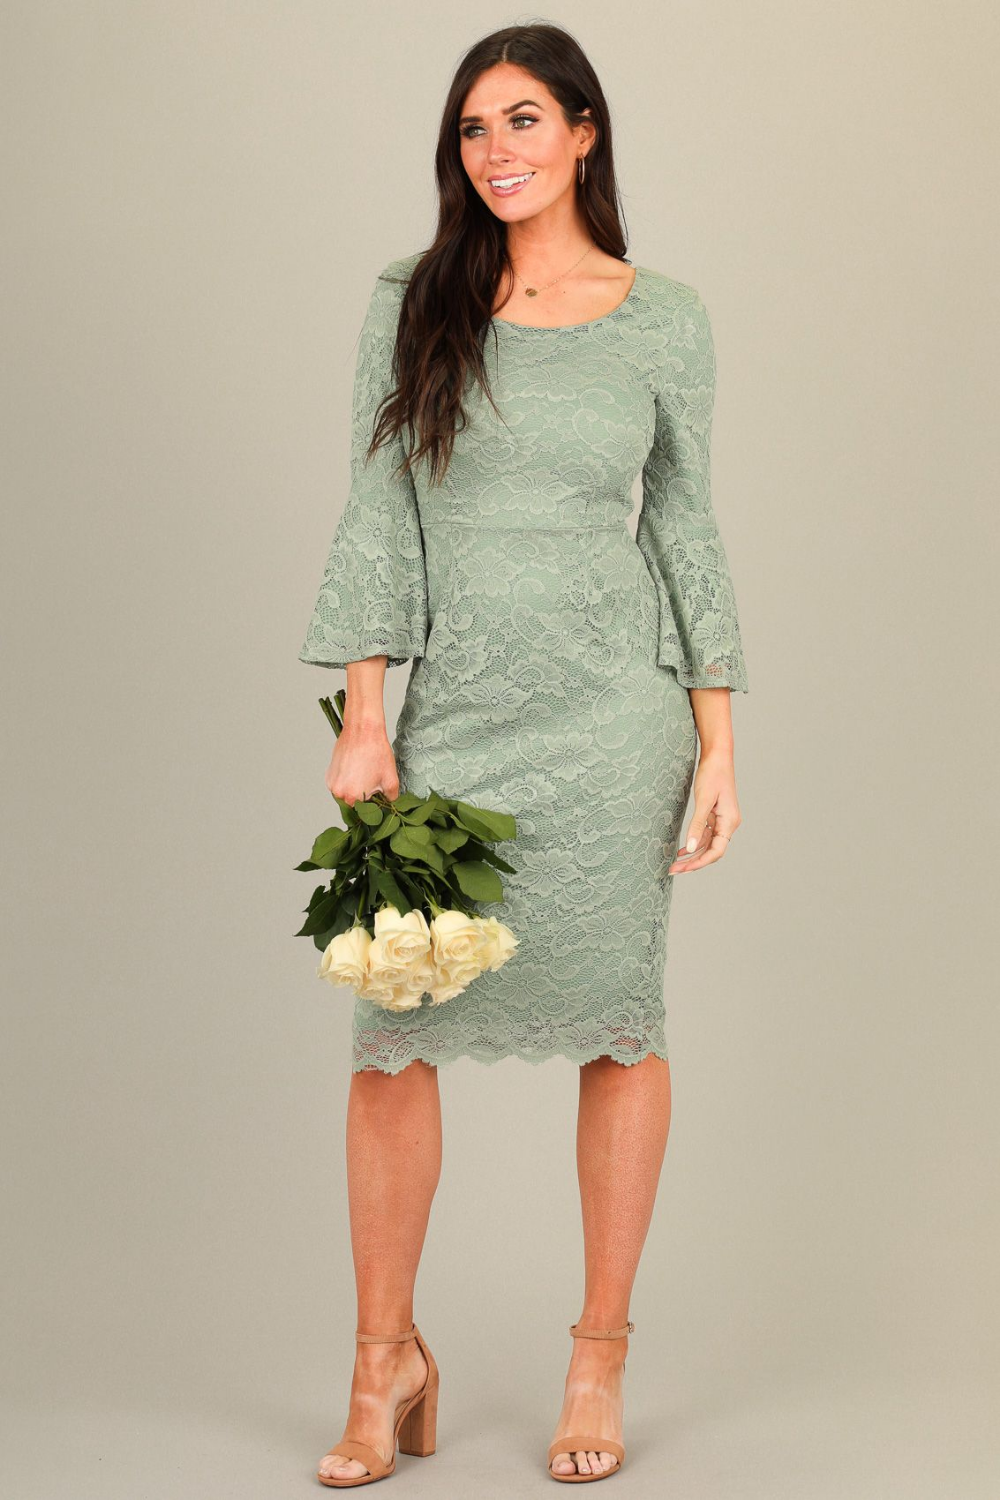 April Modest Bridesmaid Dress in Denim Blue Lace -   17 sage green bridesmaid dresses modest ideas